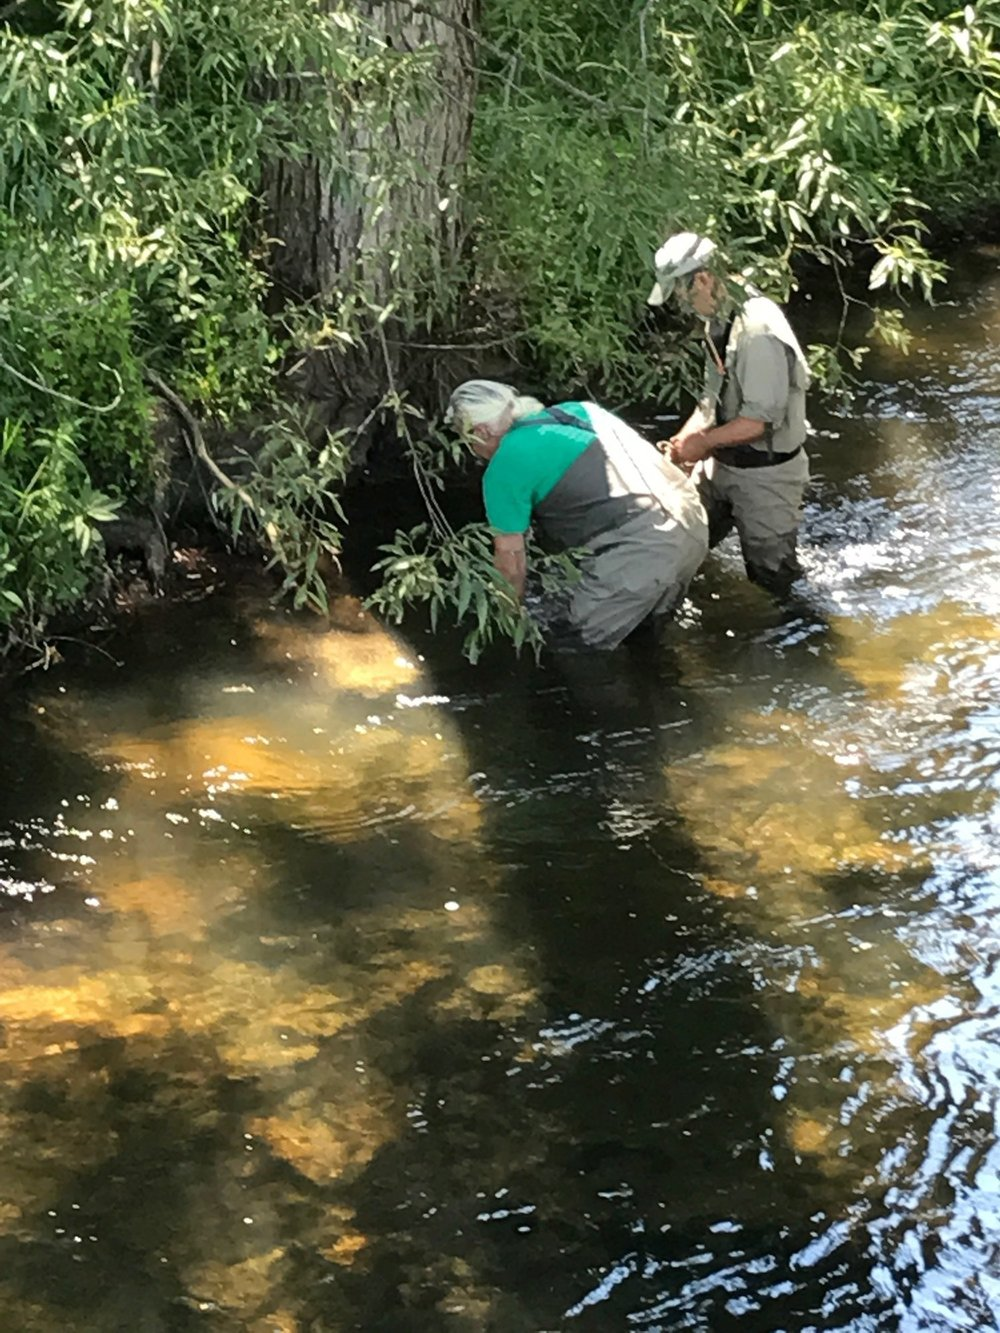 RRRC Chairman Matt Pollard and RRRC Member Don Meyer placing temperature monitors in the Rifle River, July 2017.